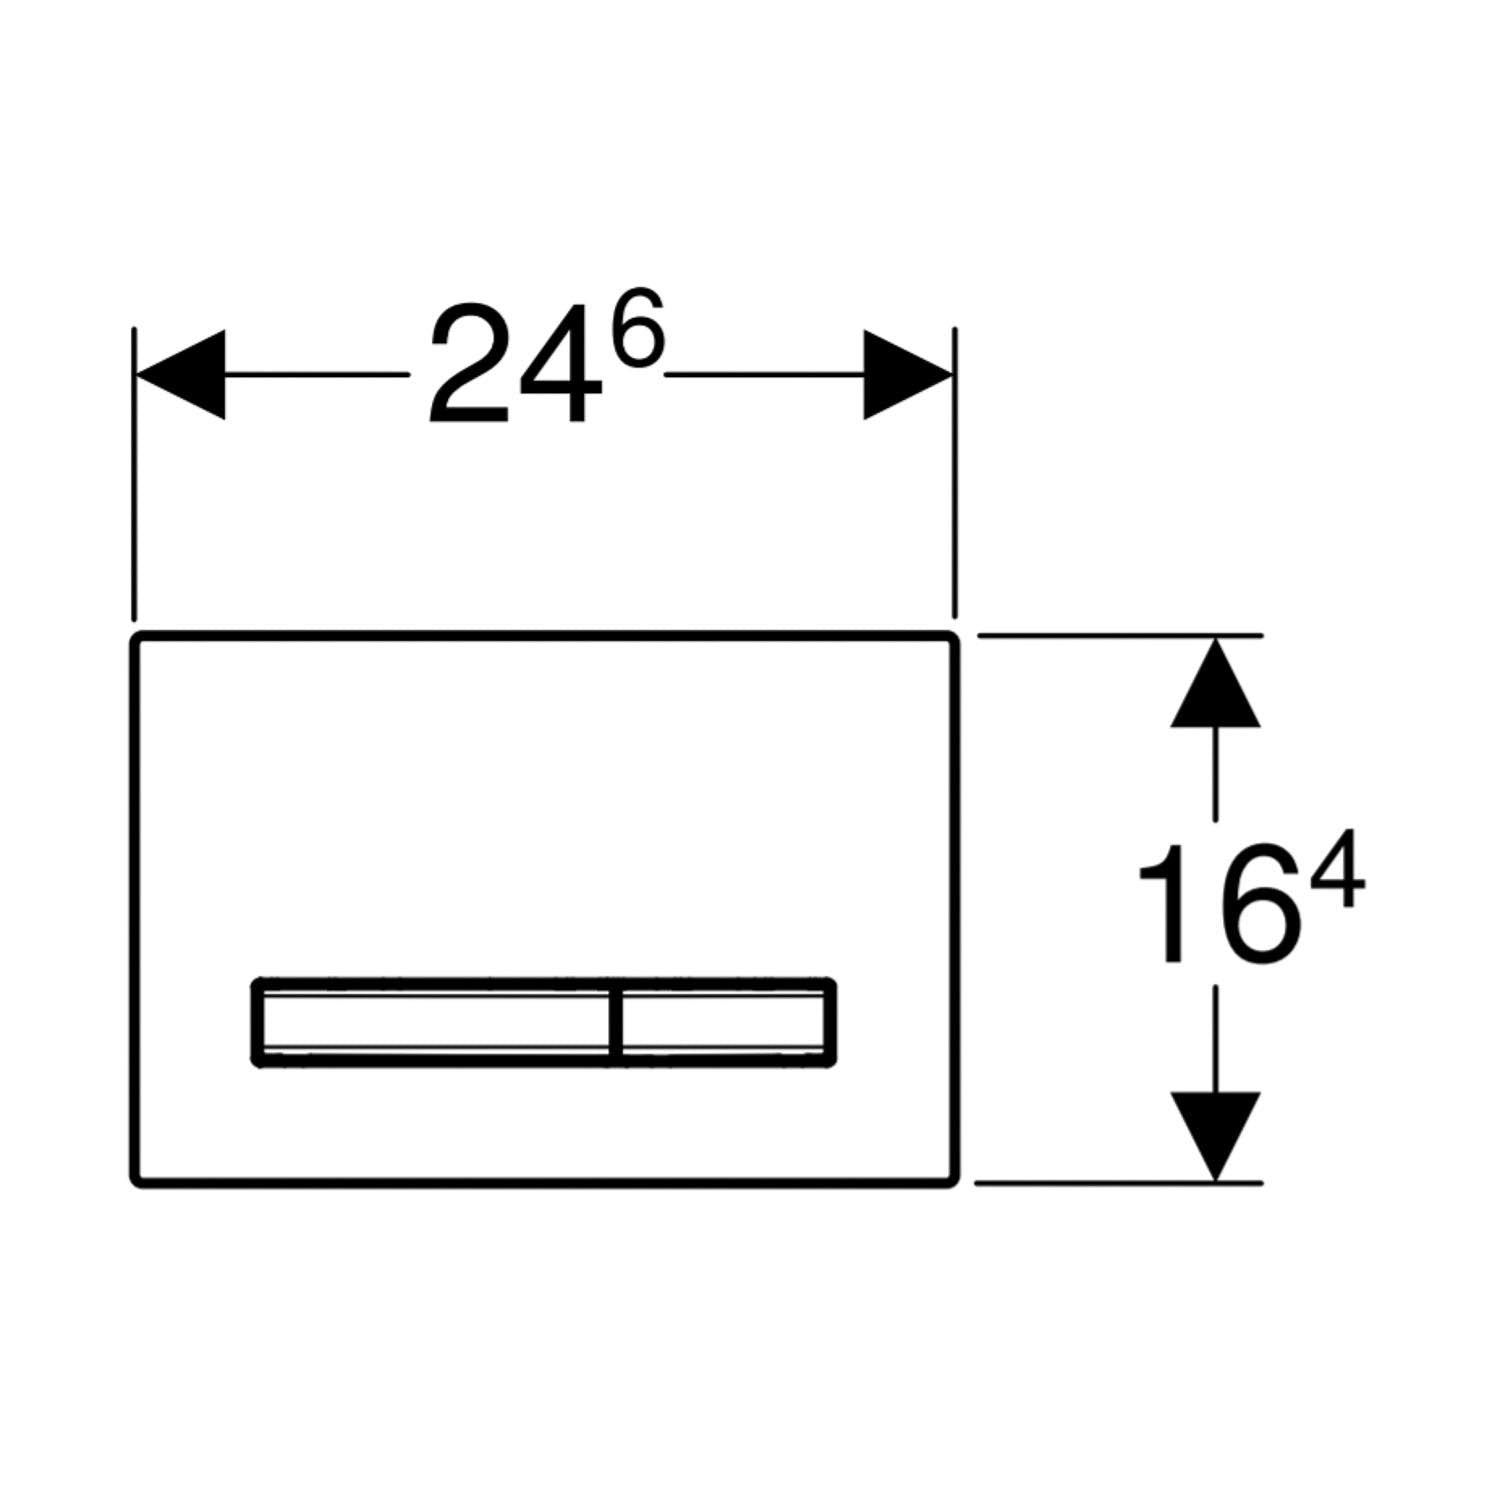 Sigma Rectangular Dual Action Flush Plate with a white finish dimensional drawing